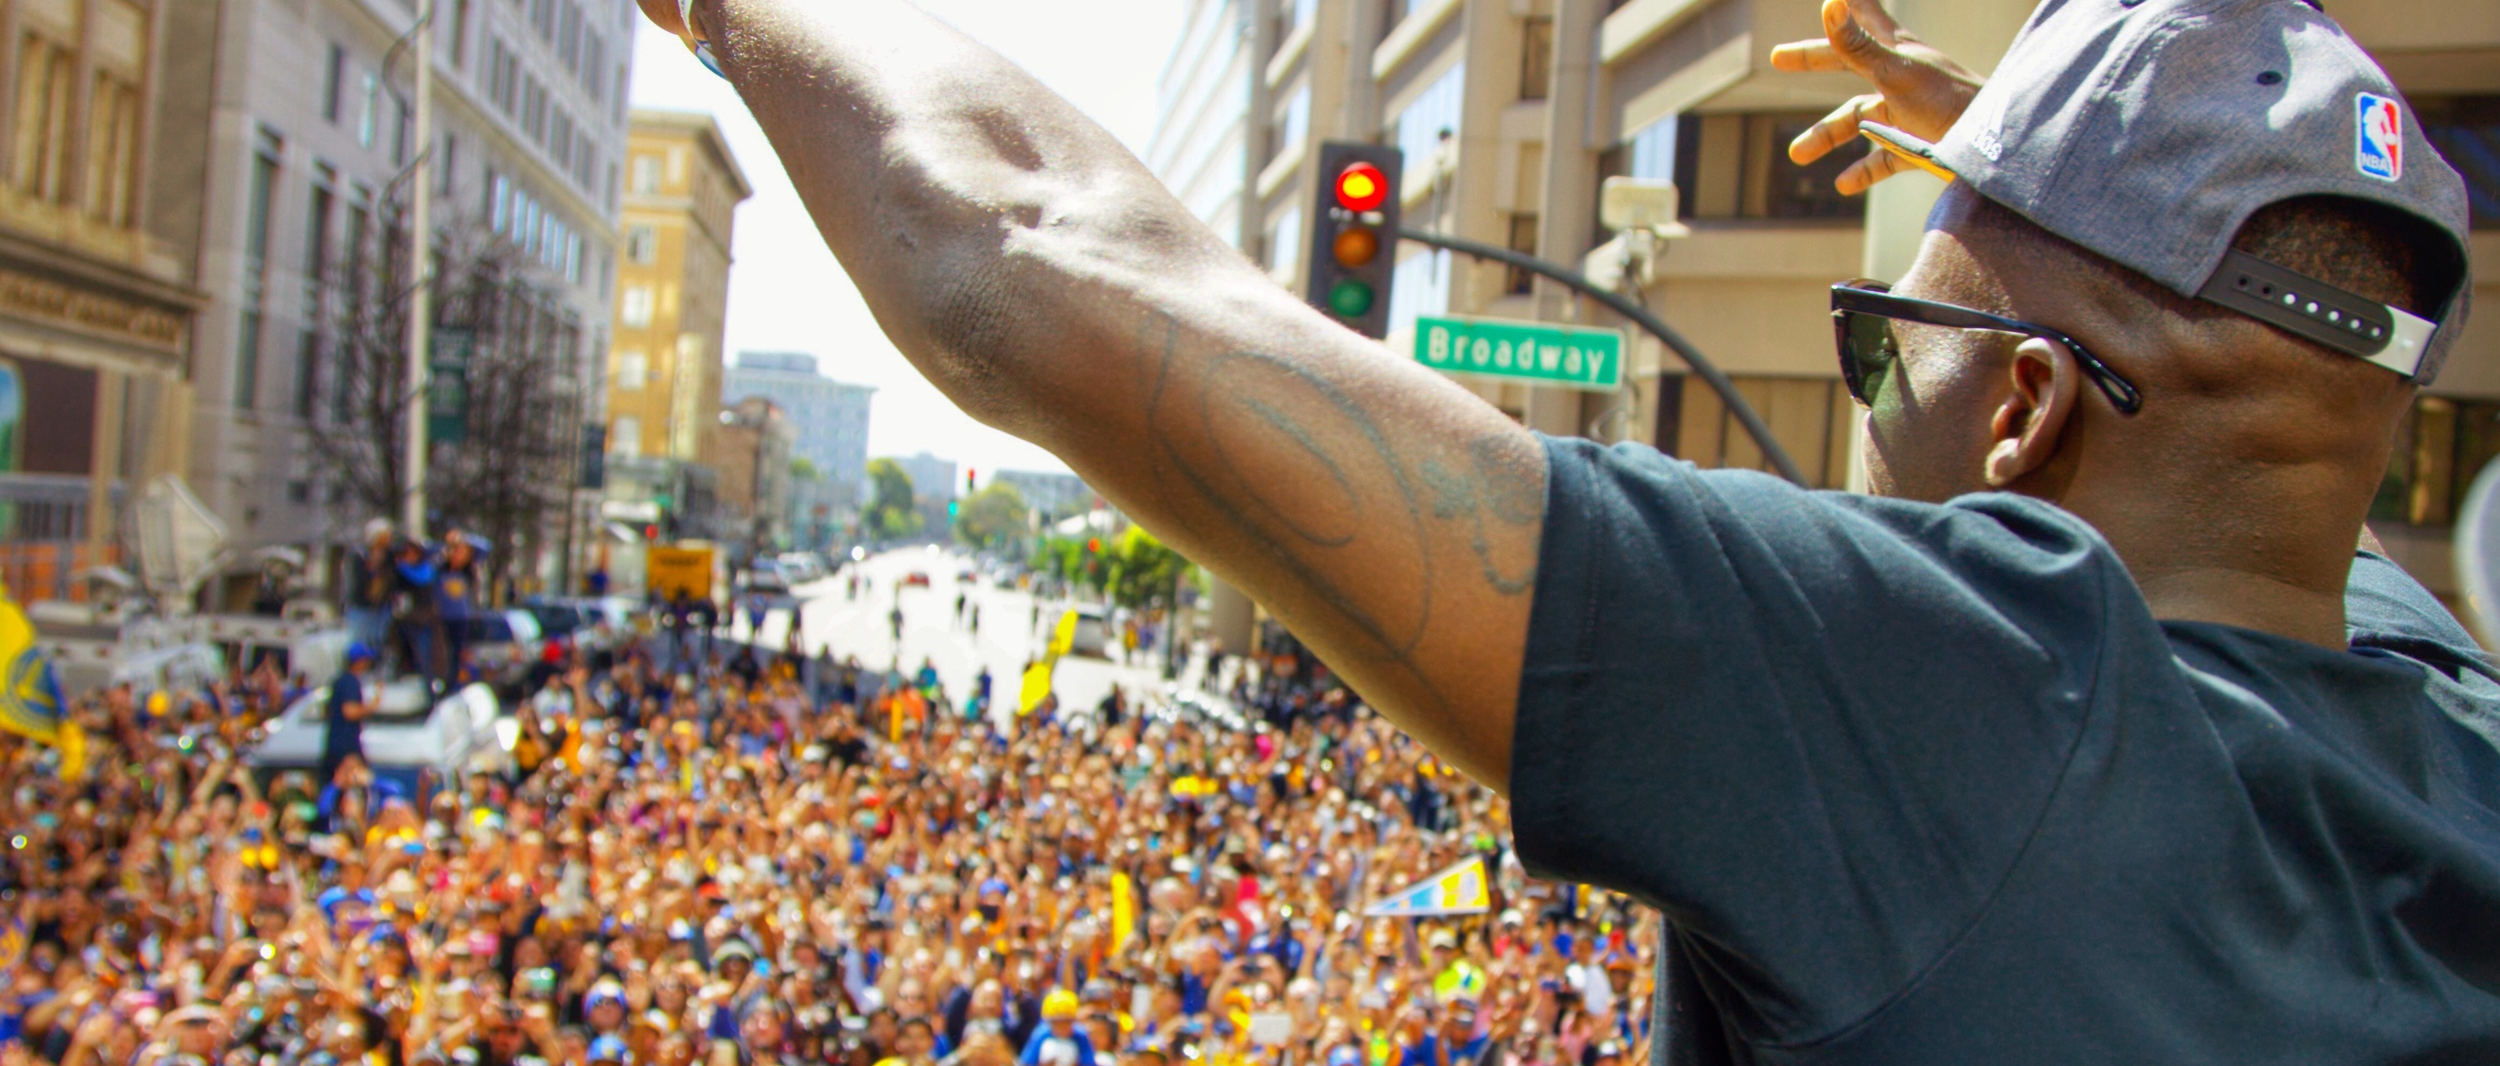 DRAYMOND TALKS THE PARADE - BLEACHER REPORT   WATCH